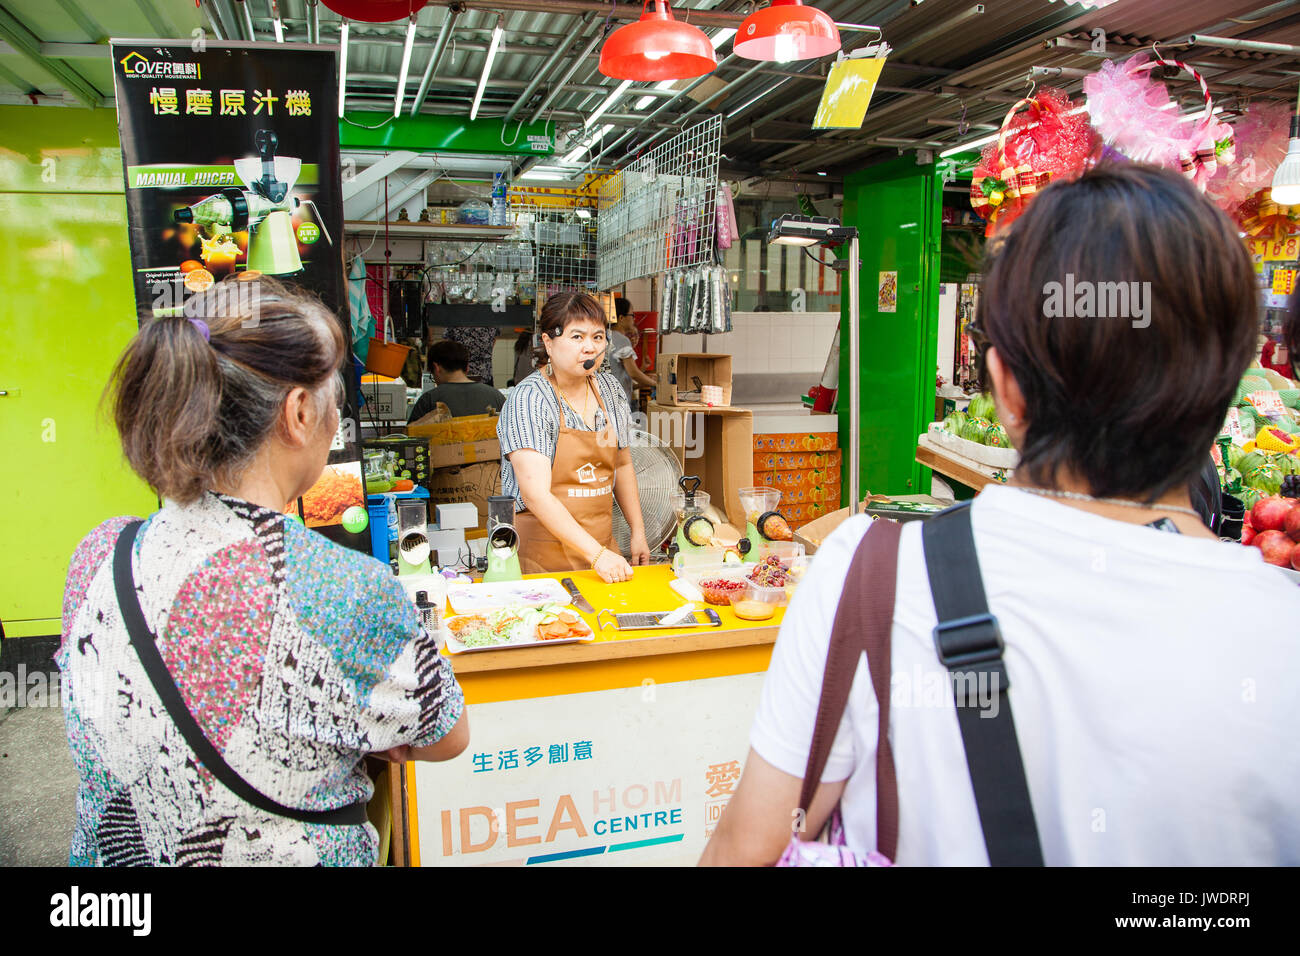 HONG KONG - JULY 10, 2017: A street vendor making a sales pitch on her kitchenware in Mong Kok. The area is a popular street market where visitors go  - Stock Image